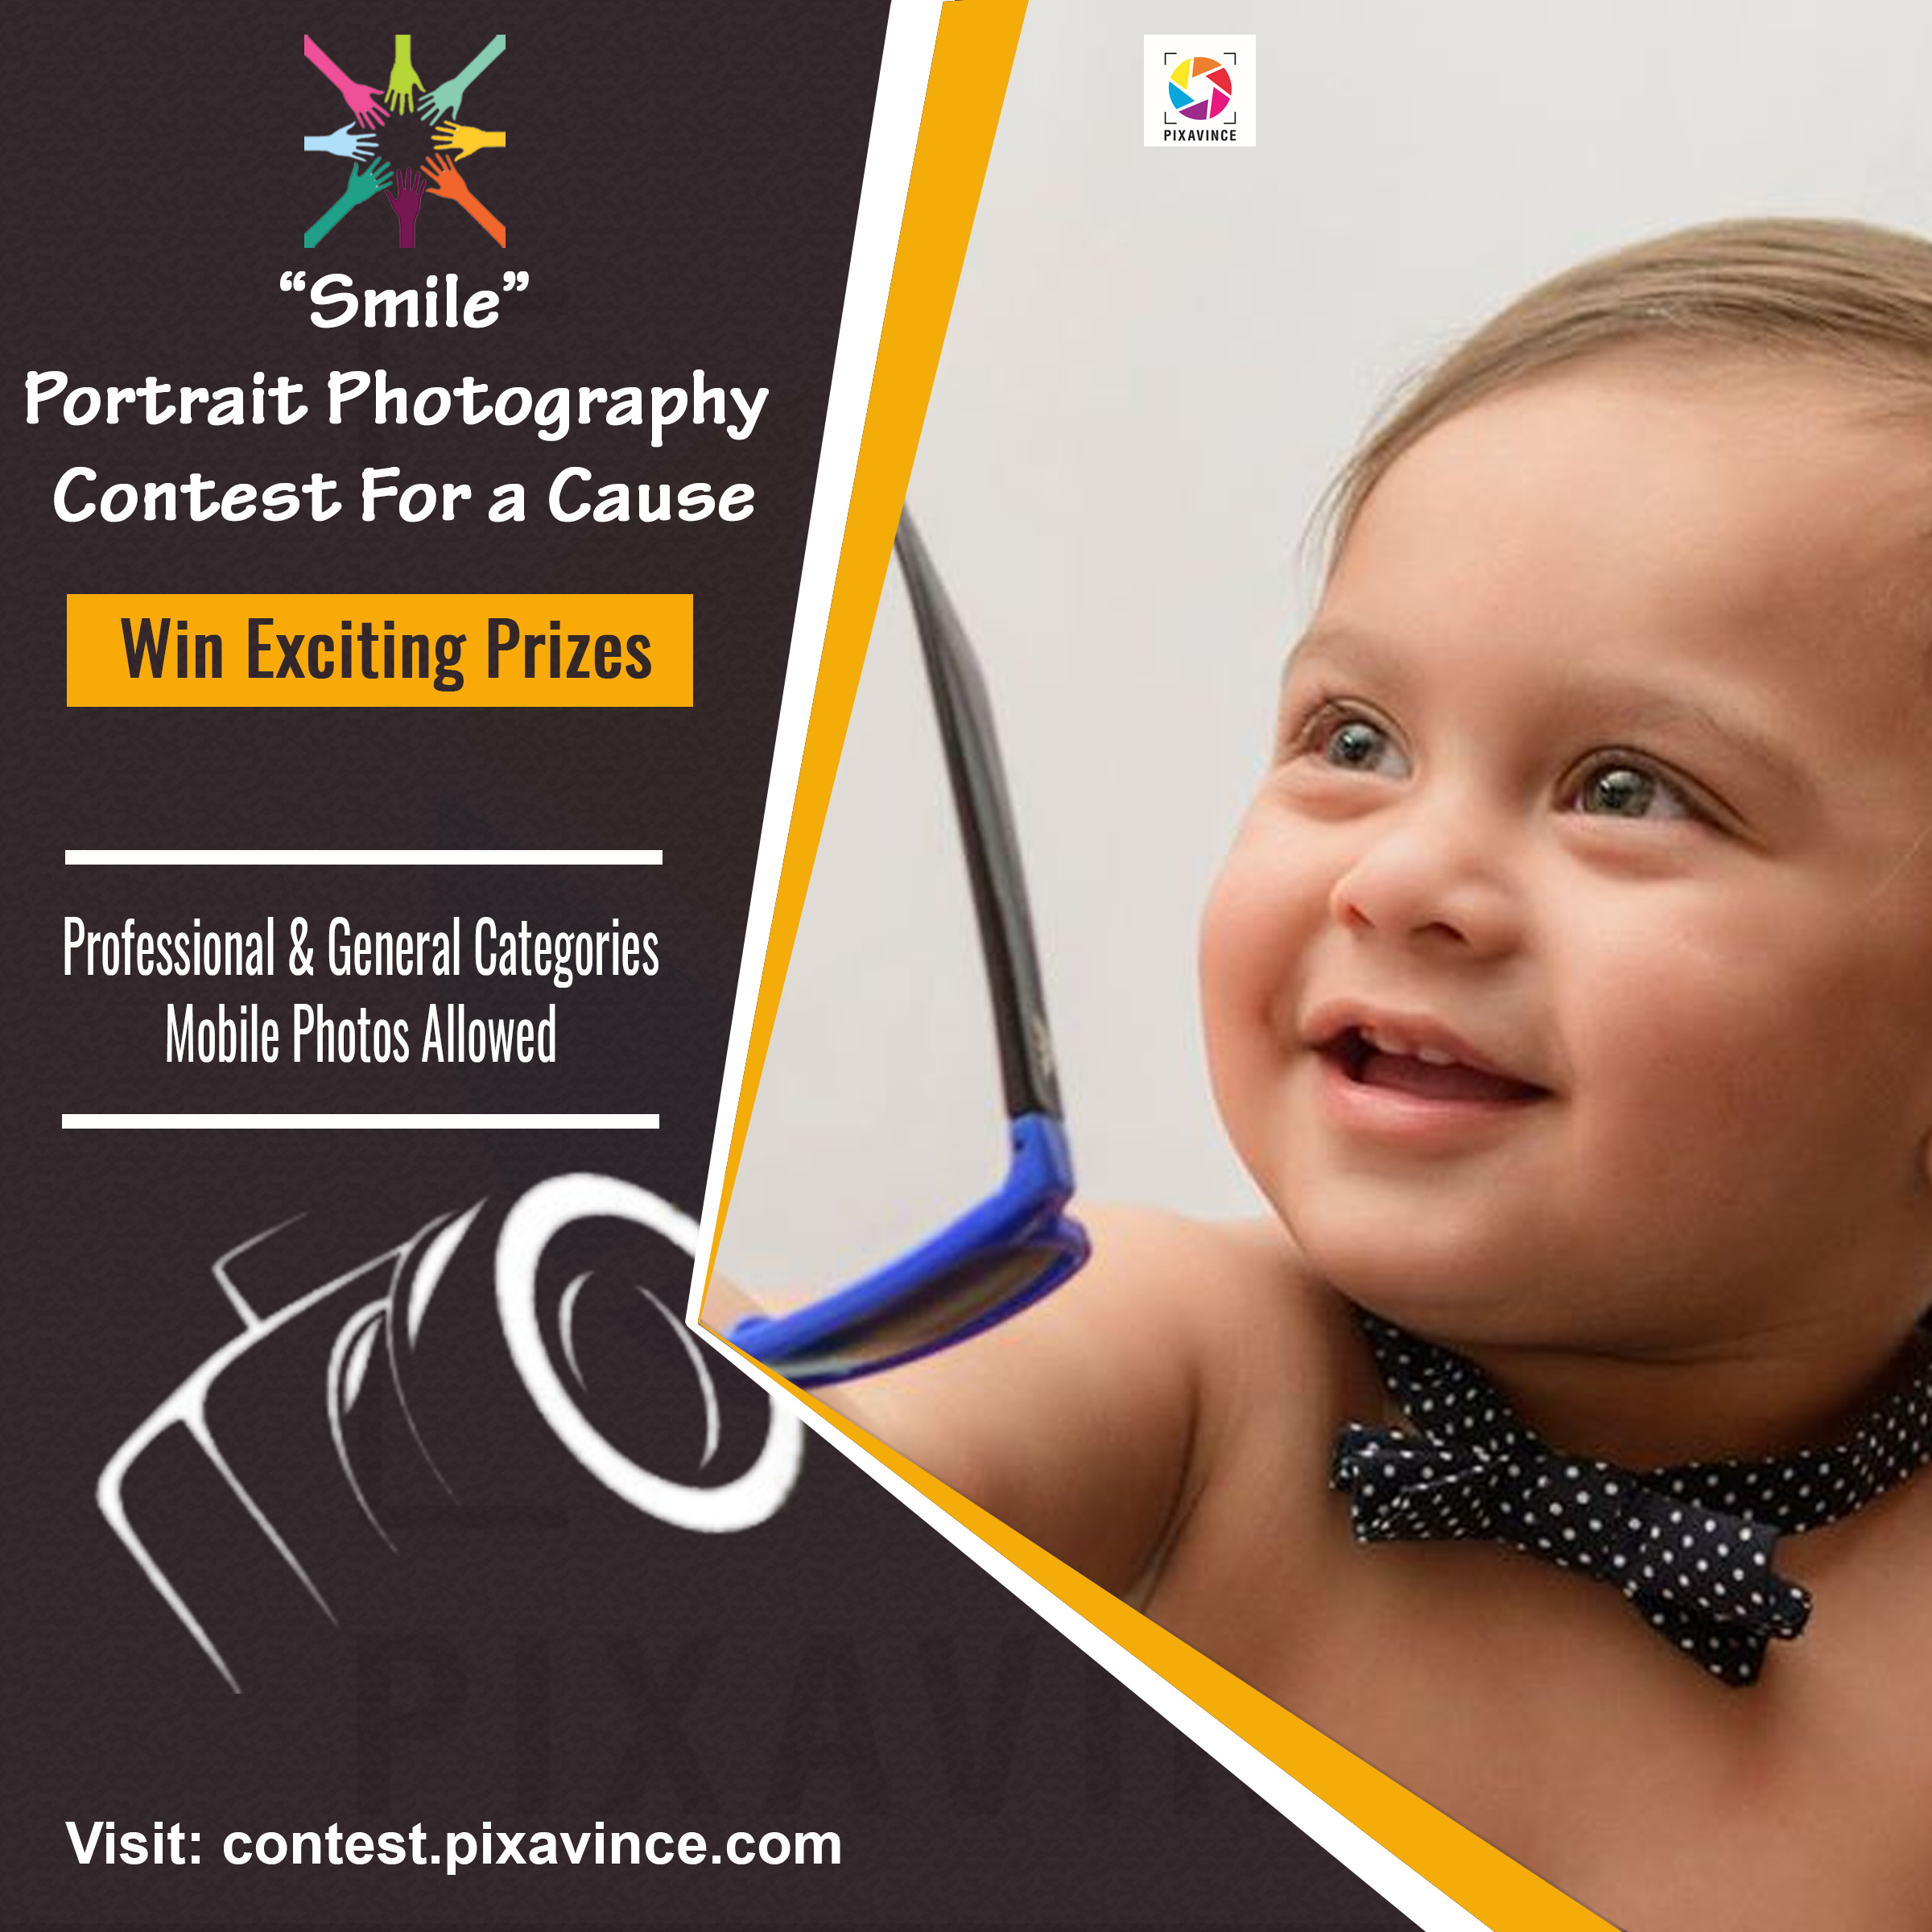 Smile: Portrait Photography Contest For A Cause